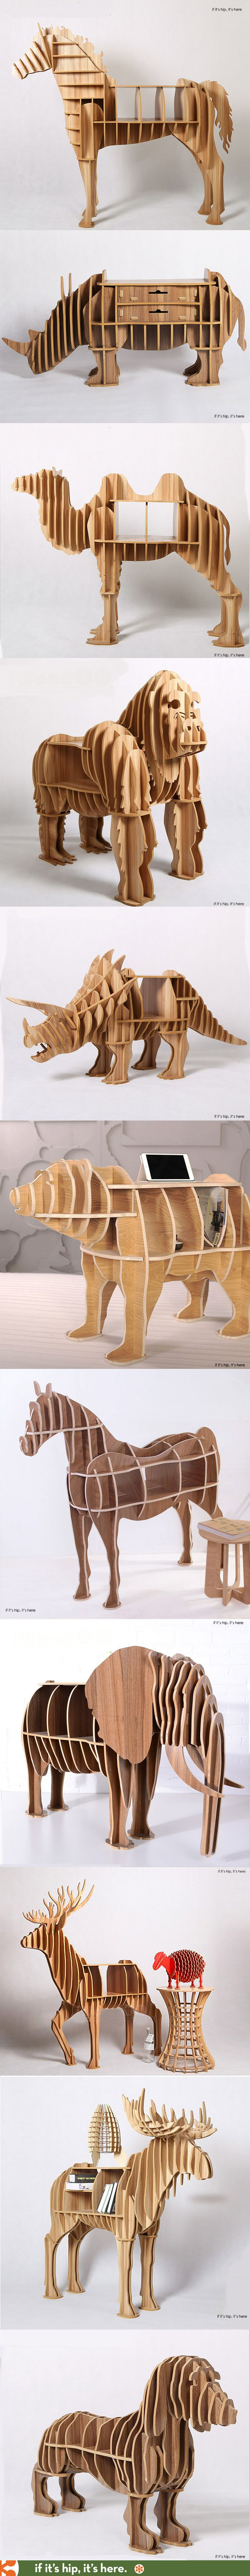 The 20 most awesome animal bookcases  desks and end tables you can buy  They ship flat packed and are easily assembled without nails or glue  More at http   www ifitshipitshere com awesome animal furniture